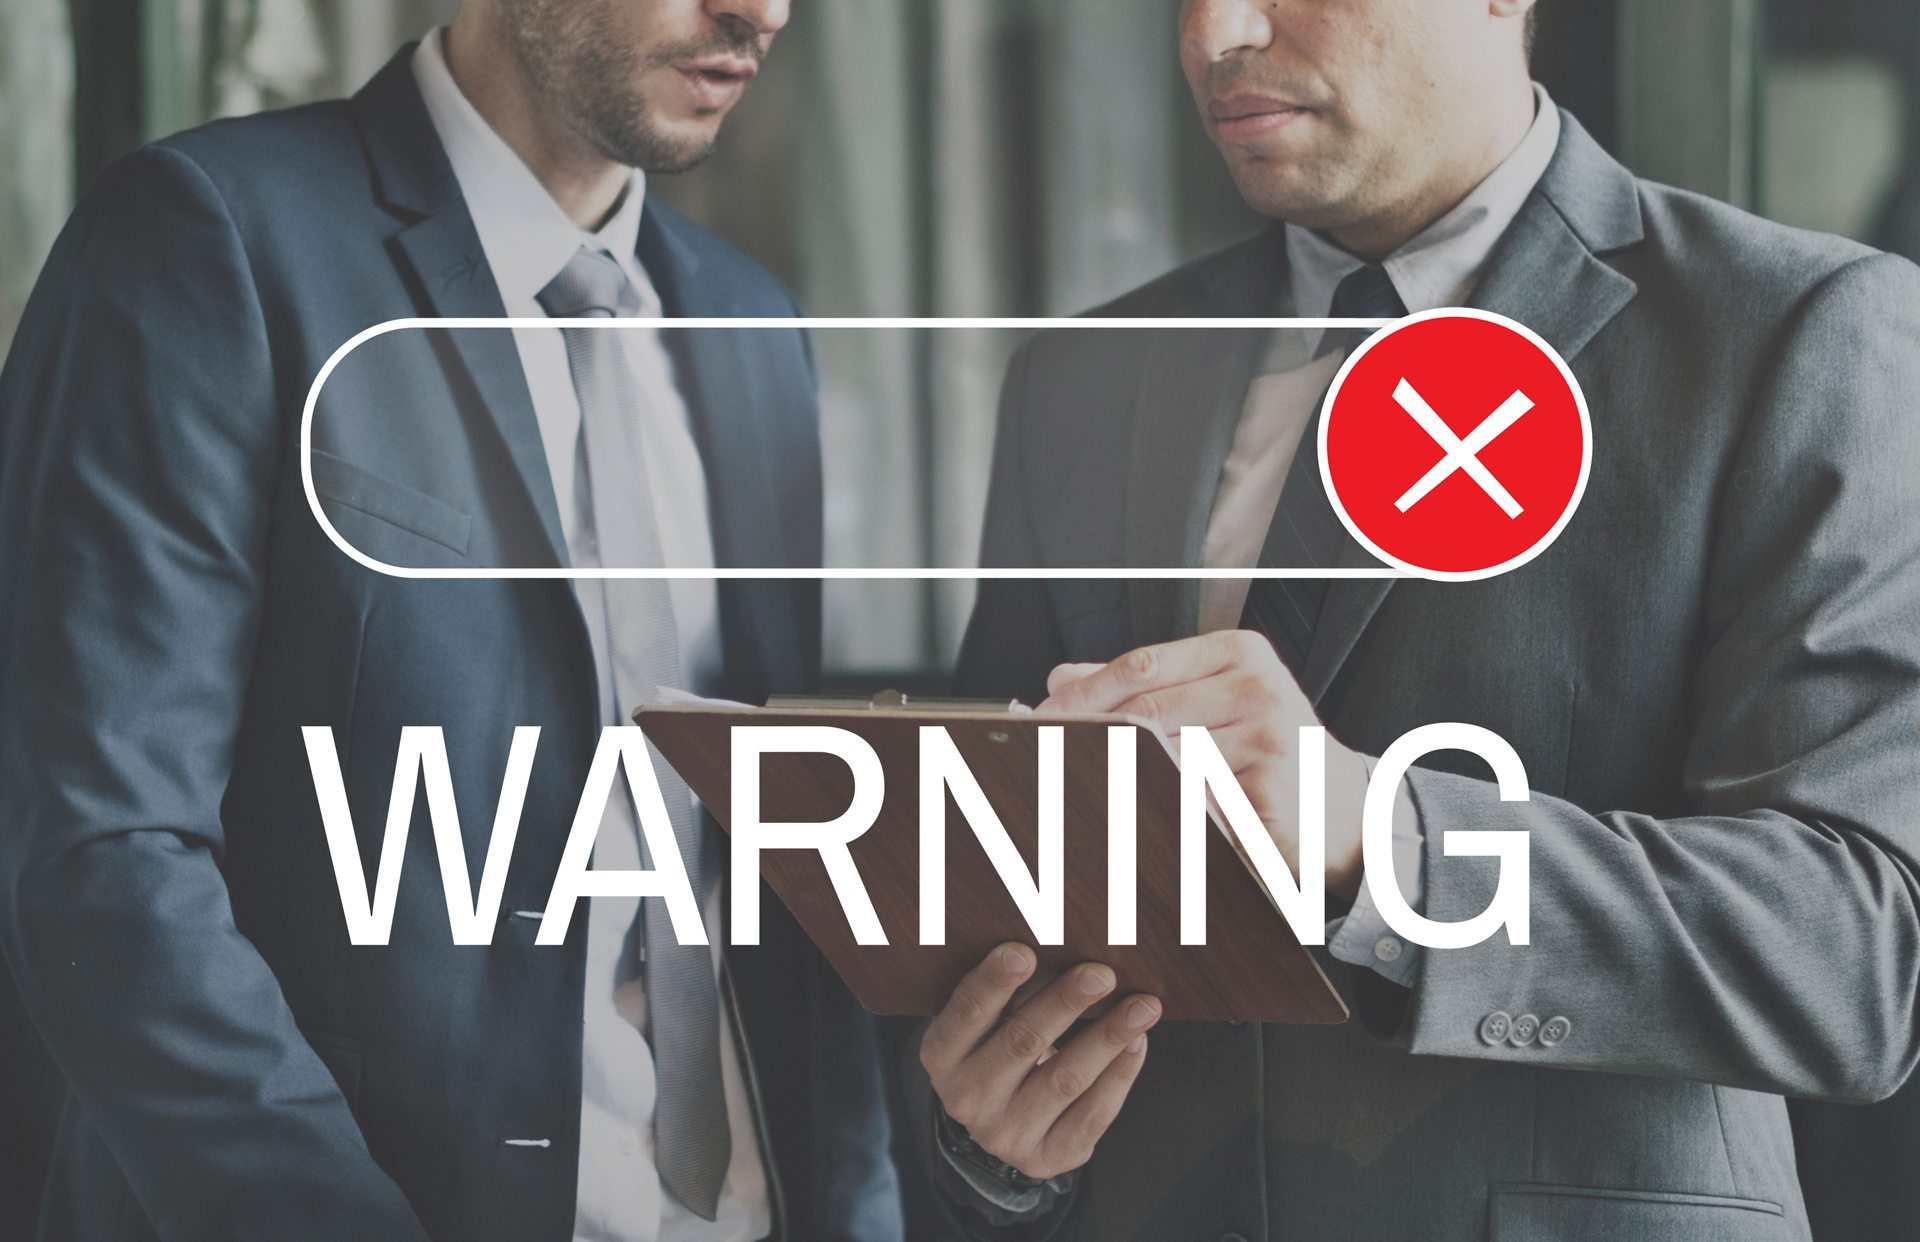 This is a warning. Make sure you r inbound marketing doesn't make any of these mistakes.